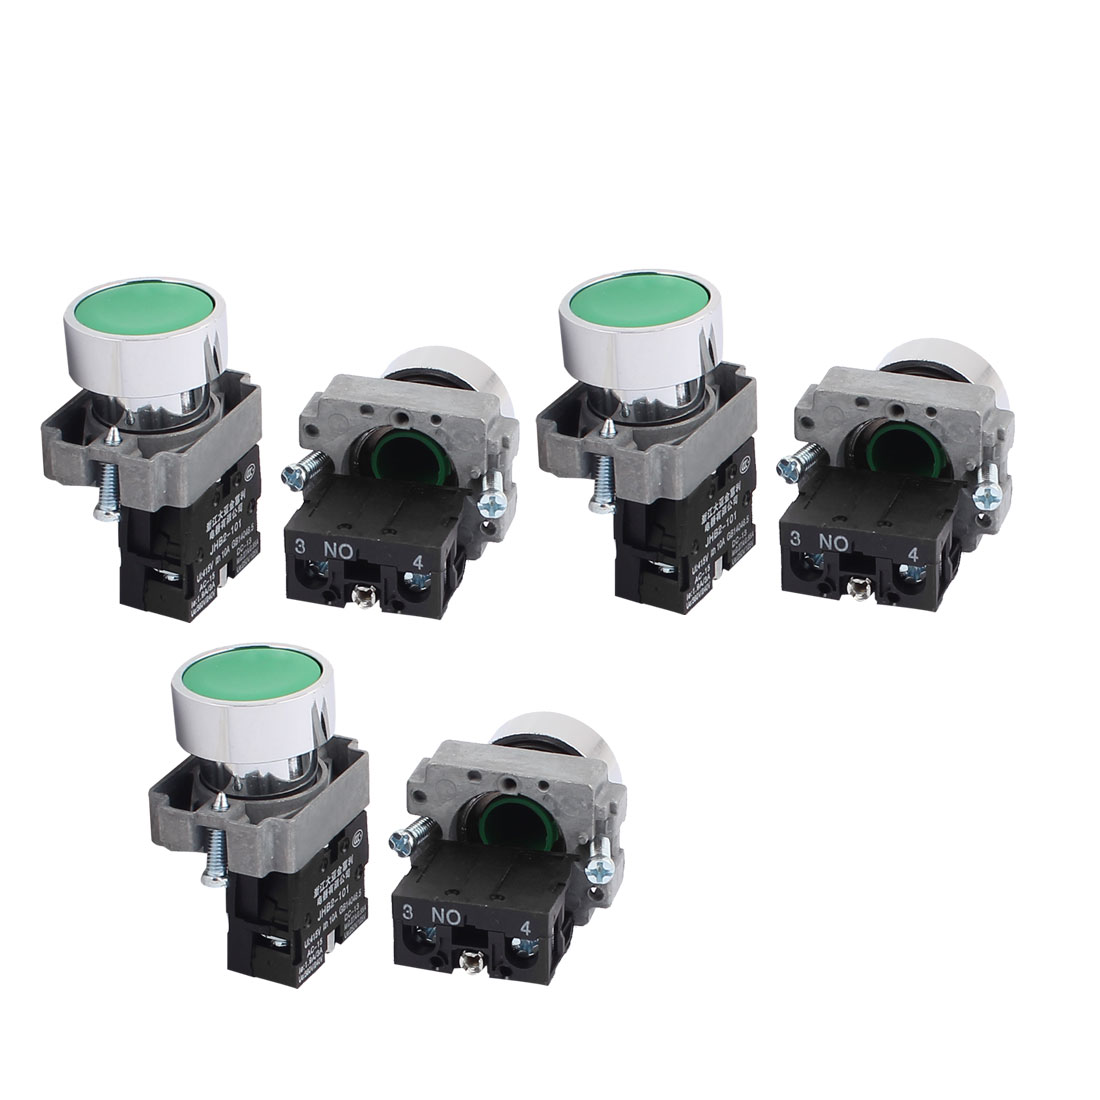 AC 415V 10A Momentary NO Green Push Button Switch Contact Block 6PCS